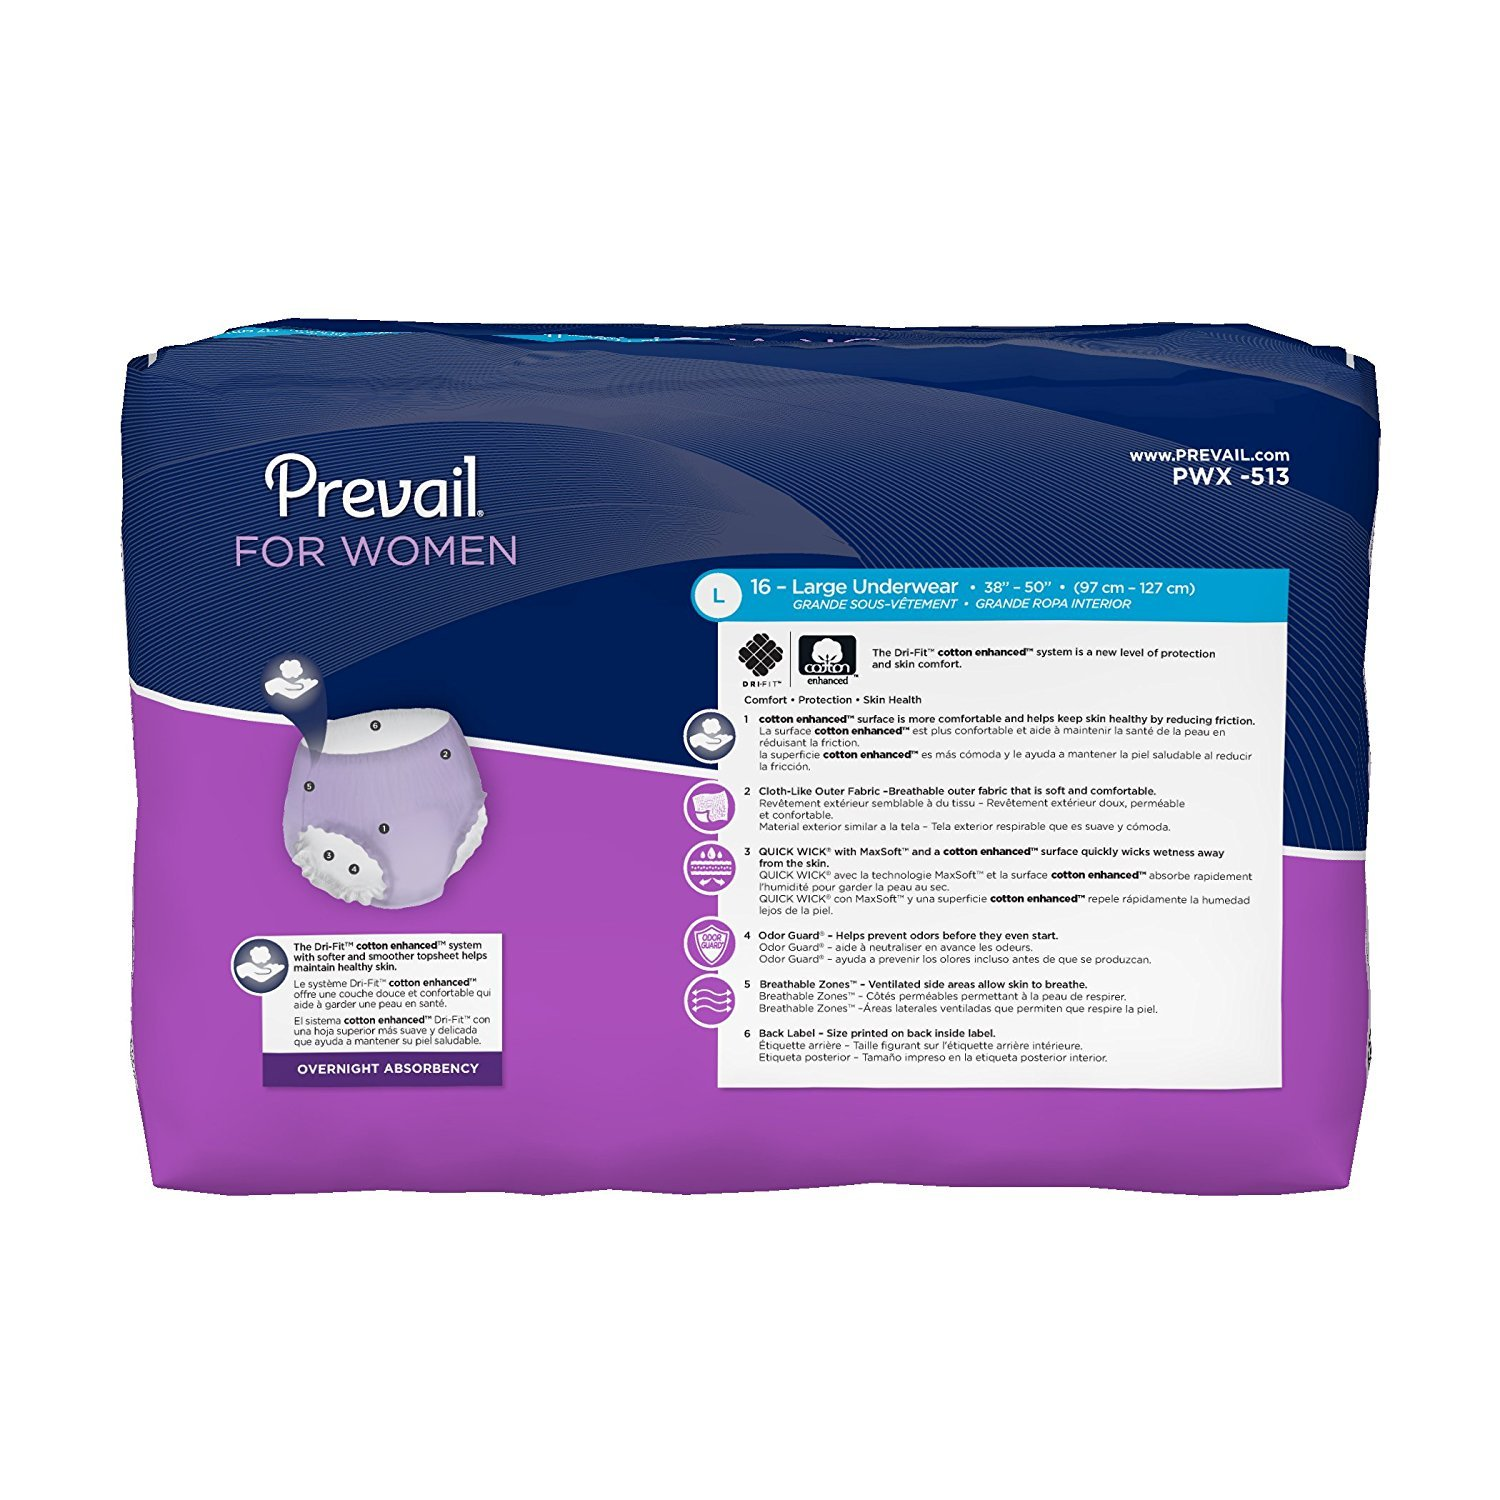 Amazon.com: Prevail Overnight Absorbency Incontinence Underwear for Women, Small/Medium, 72 Count: Health & Personal Care